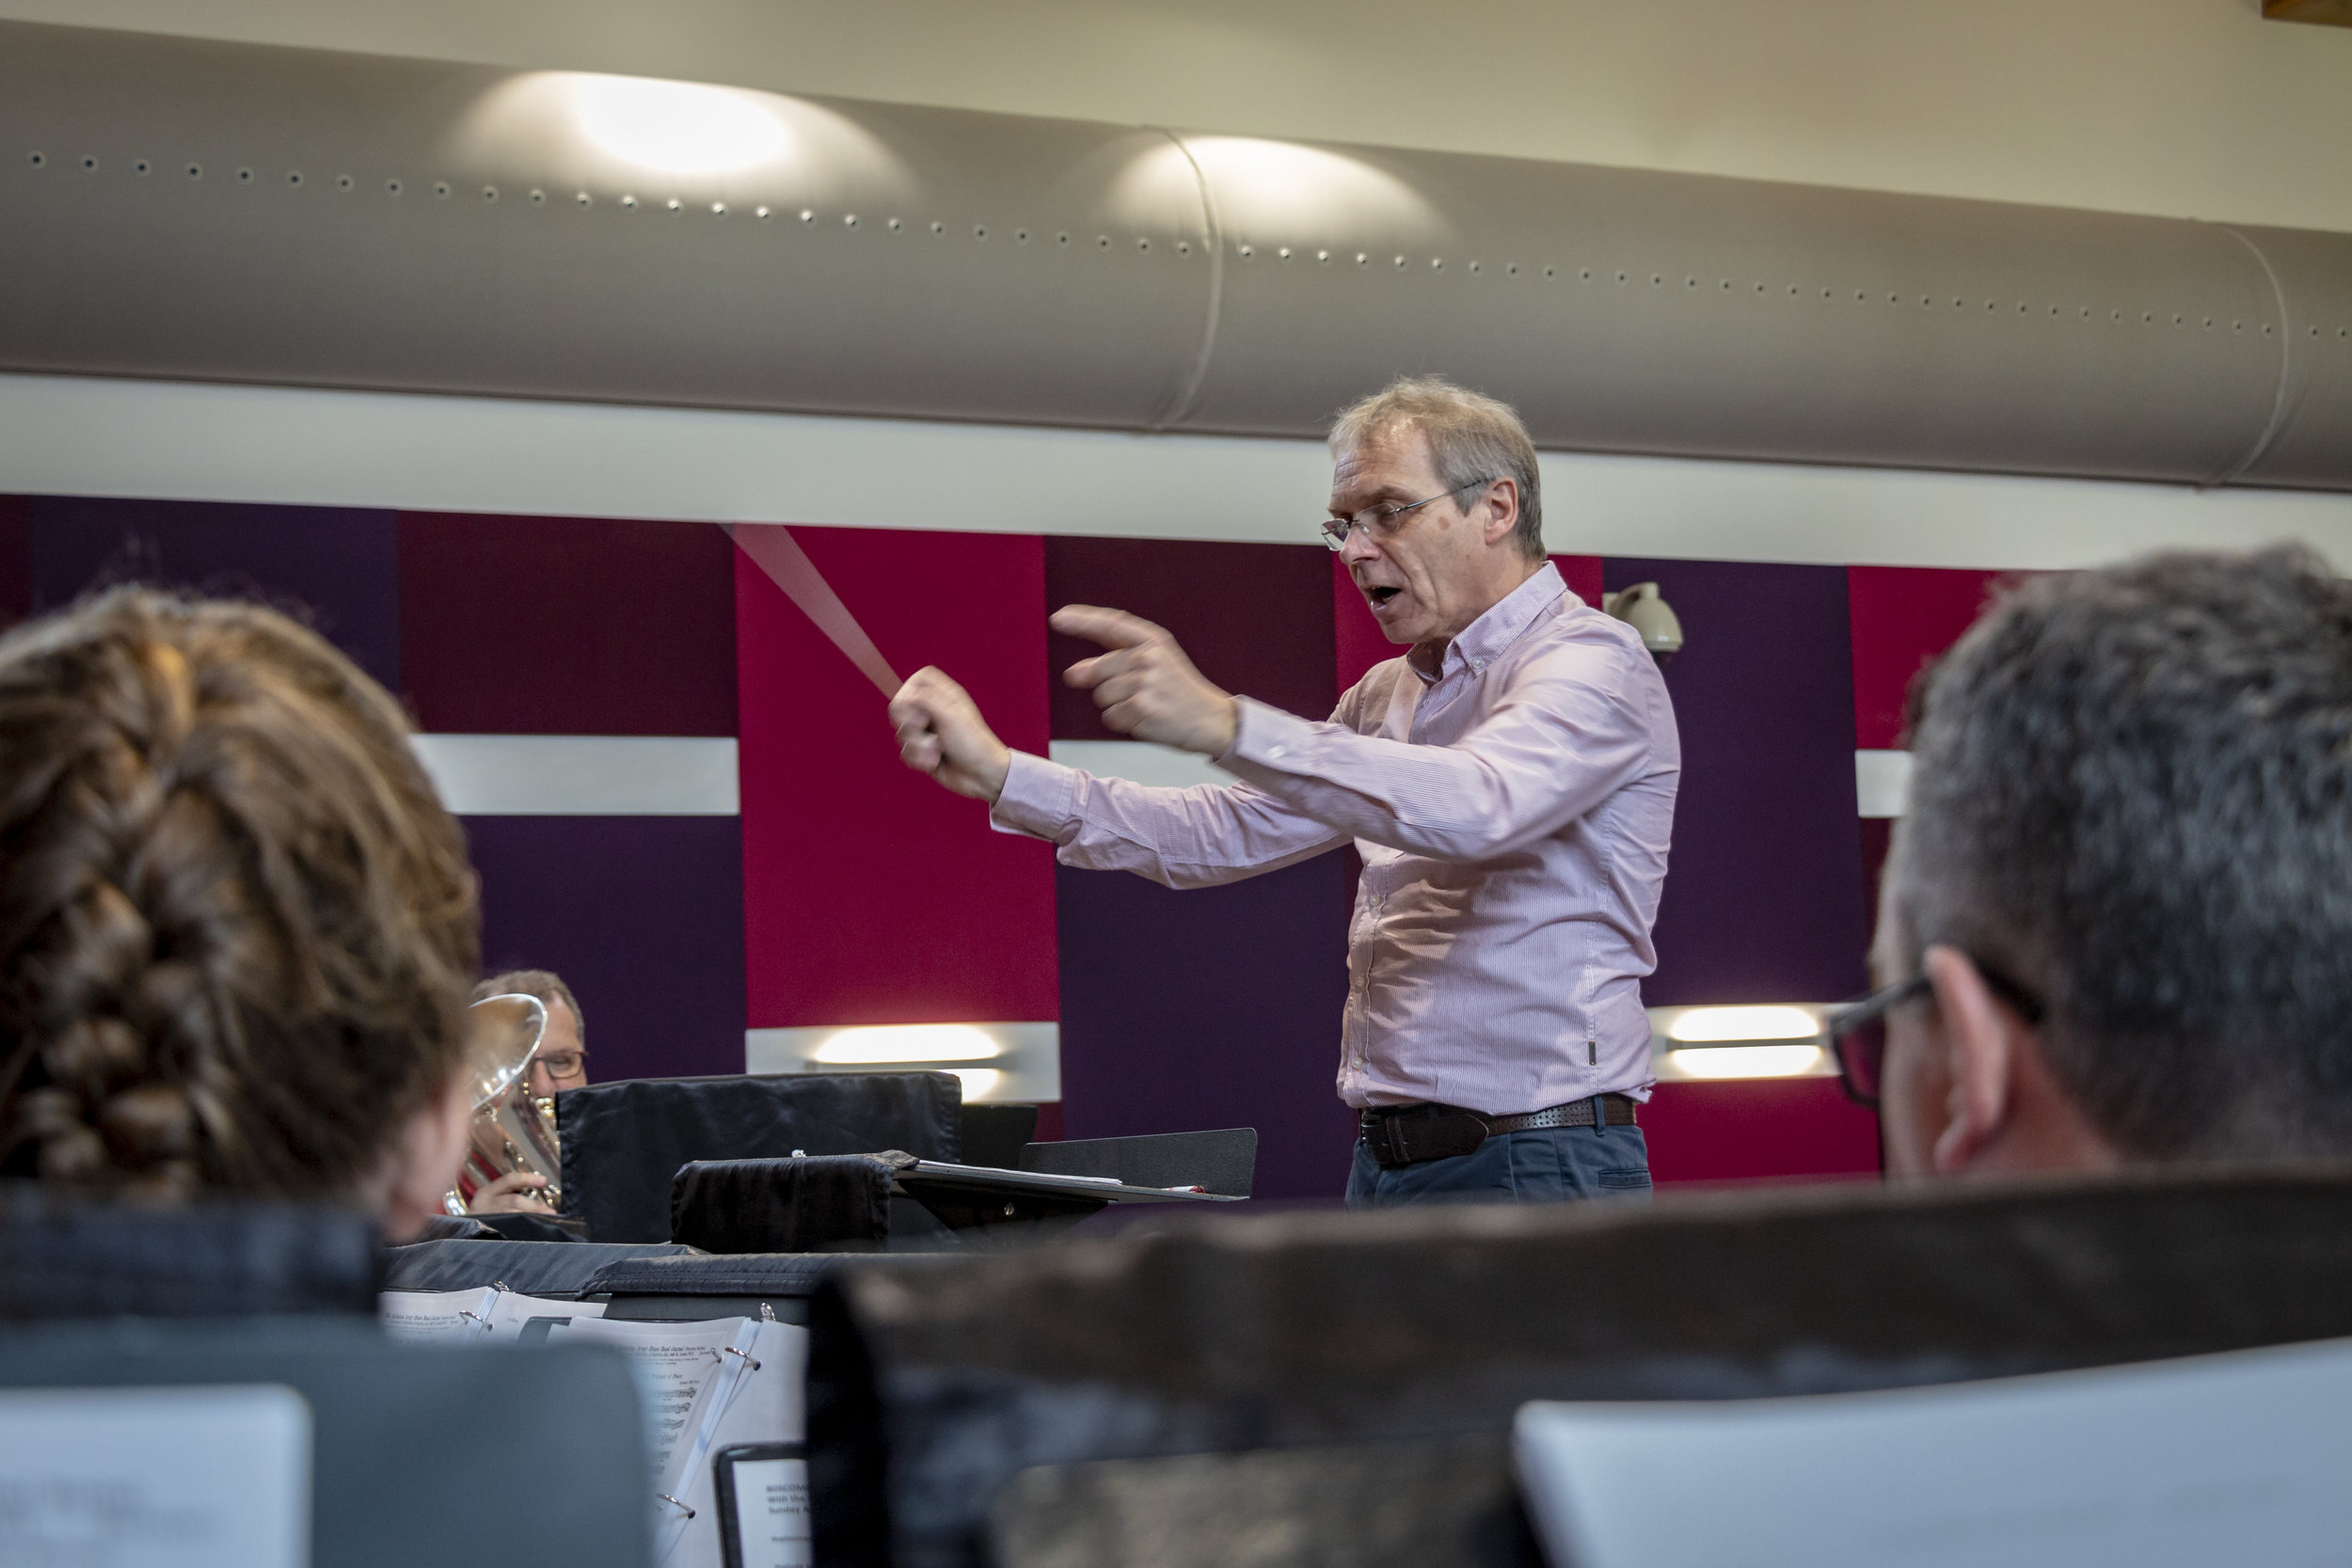 Dr. Stephen Cobb (Bandmaster of the International Staff Band) conducting the STB in rehearsals at the Chelmsford Corps.